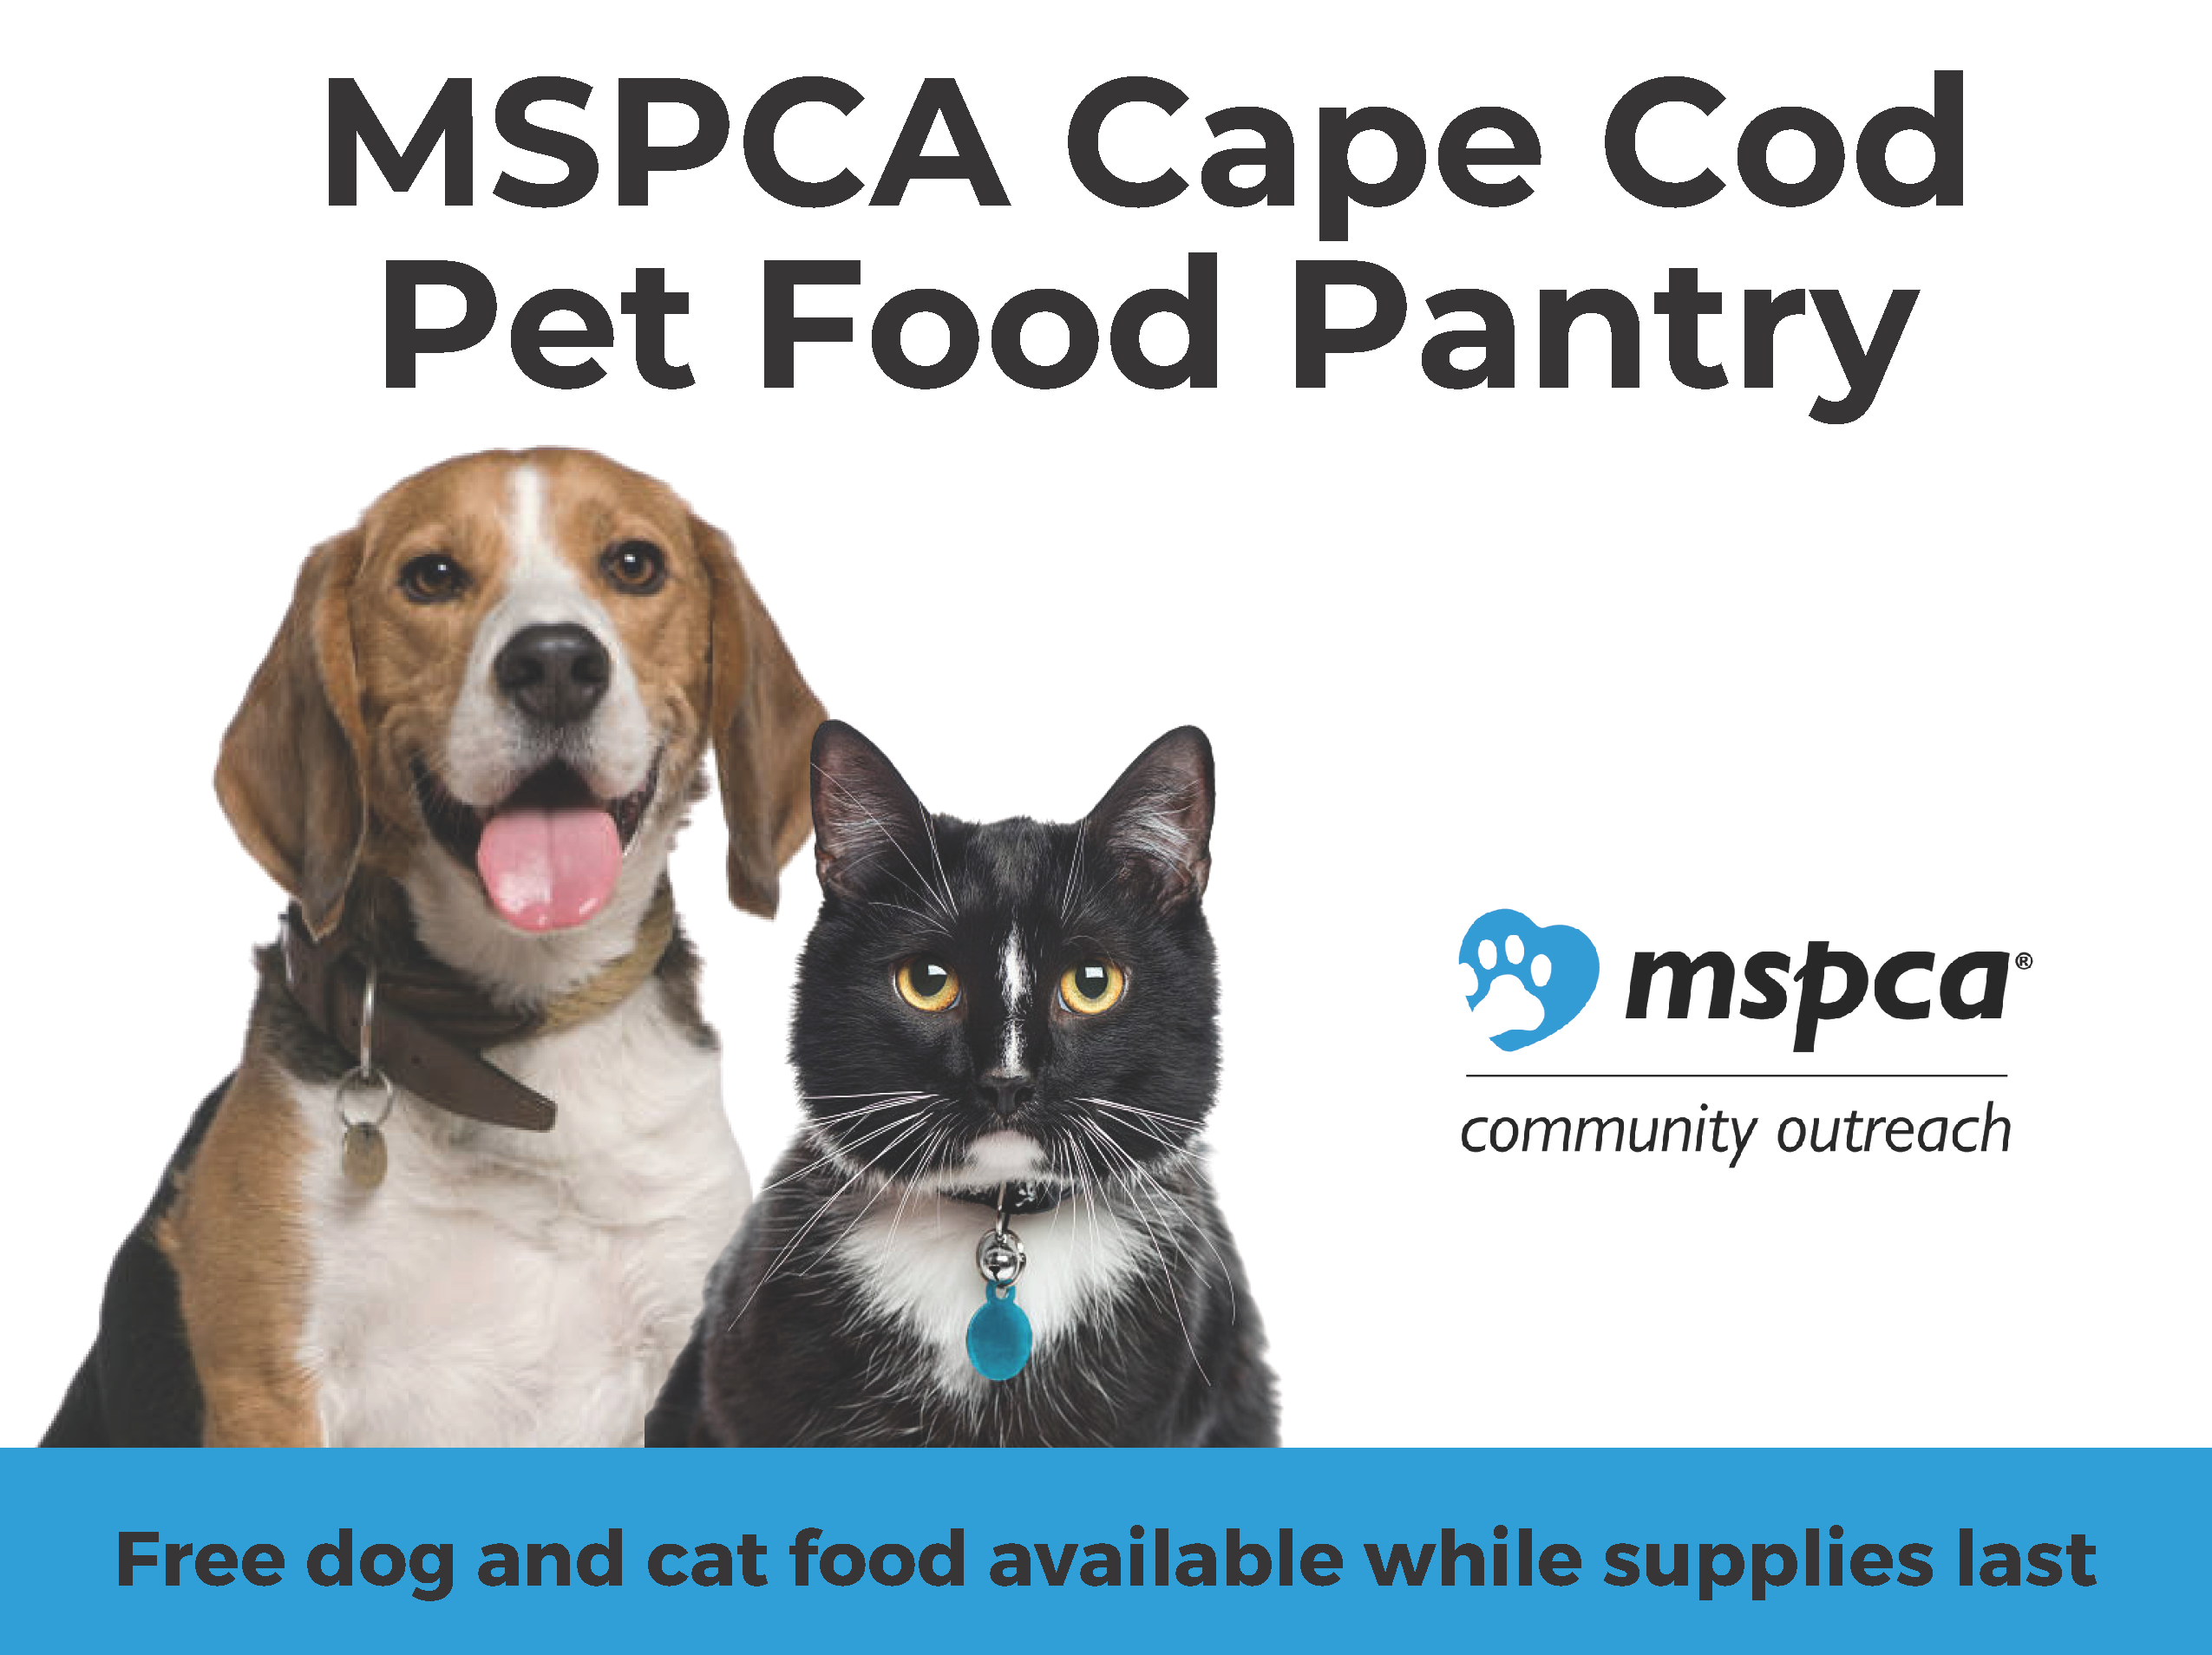 MSPCA Cape Cod Pet Food Pantry graphic